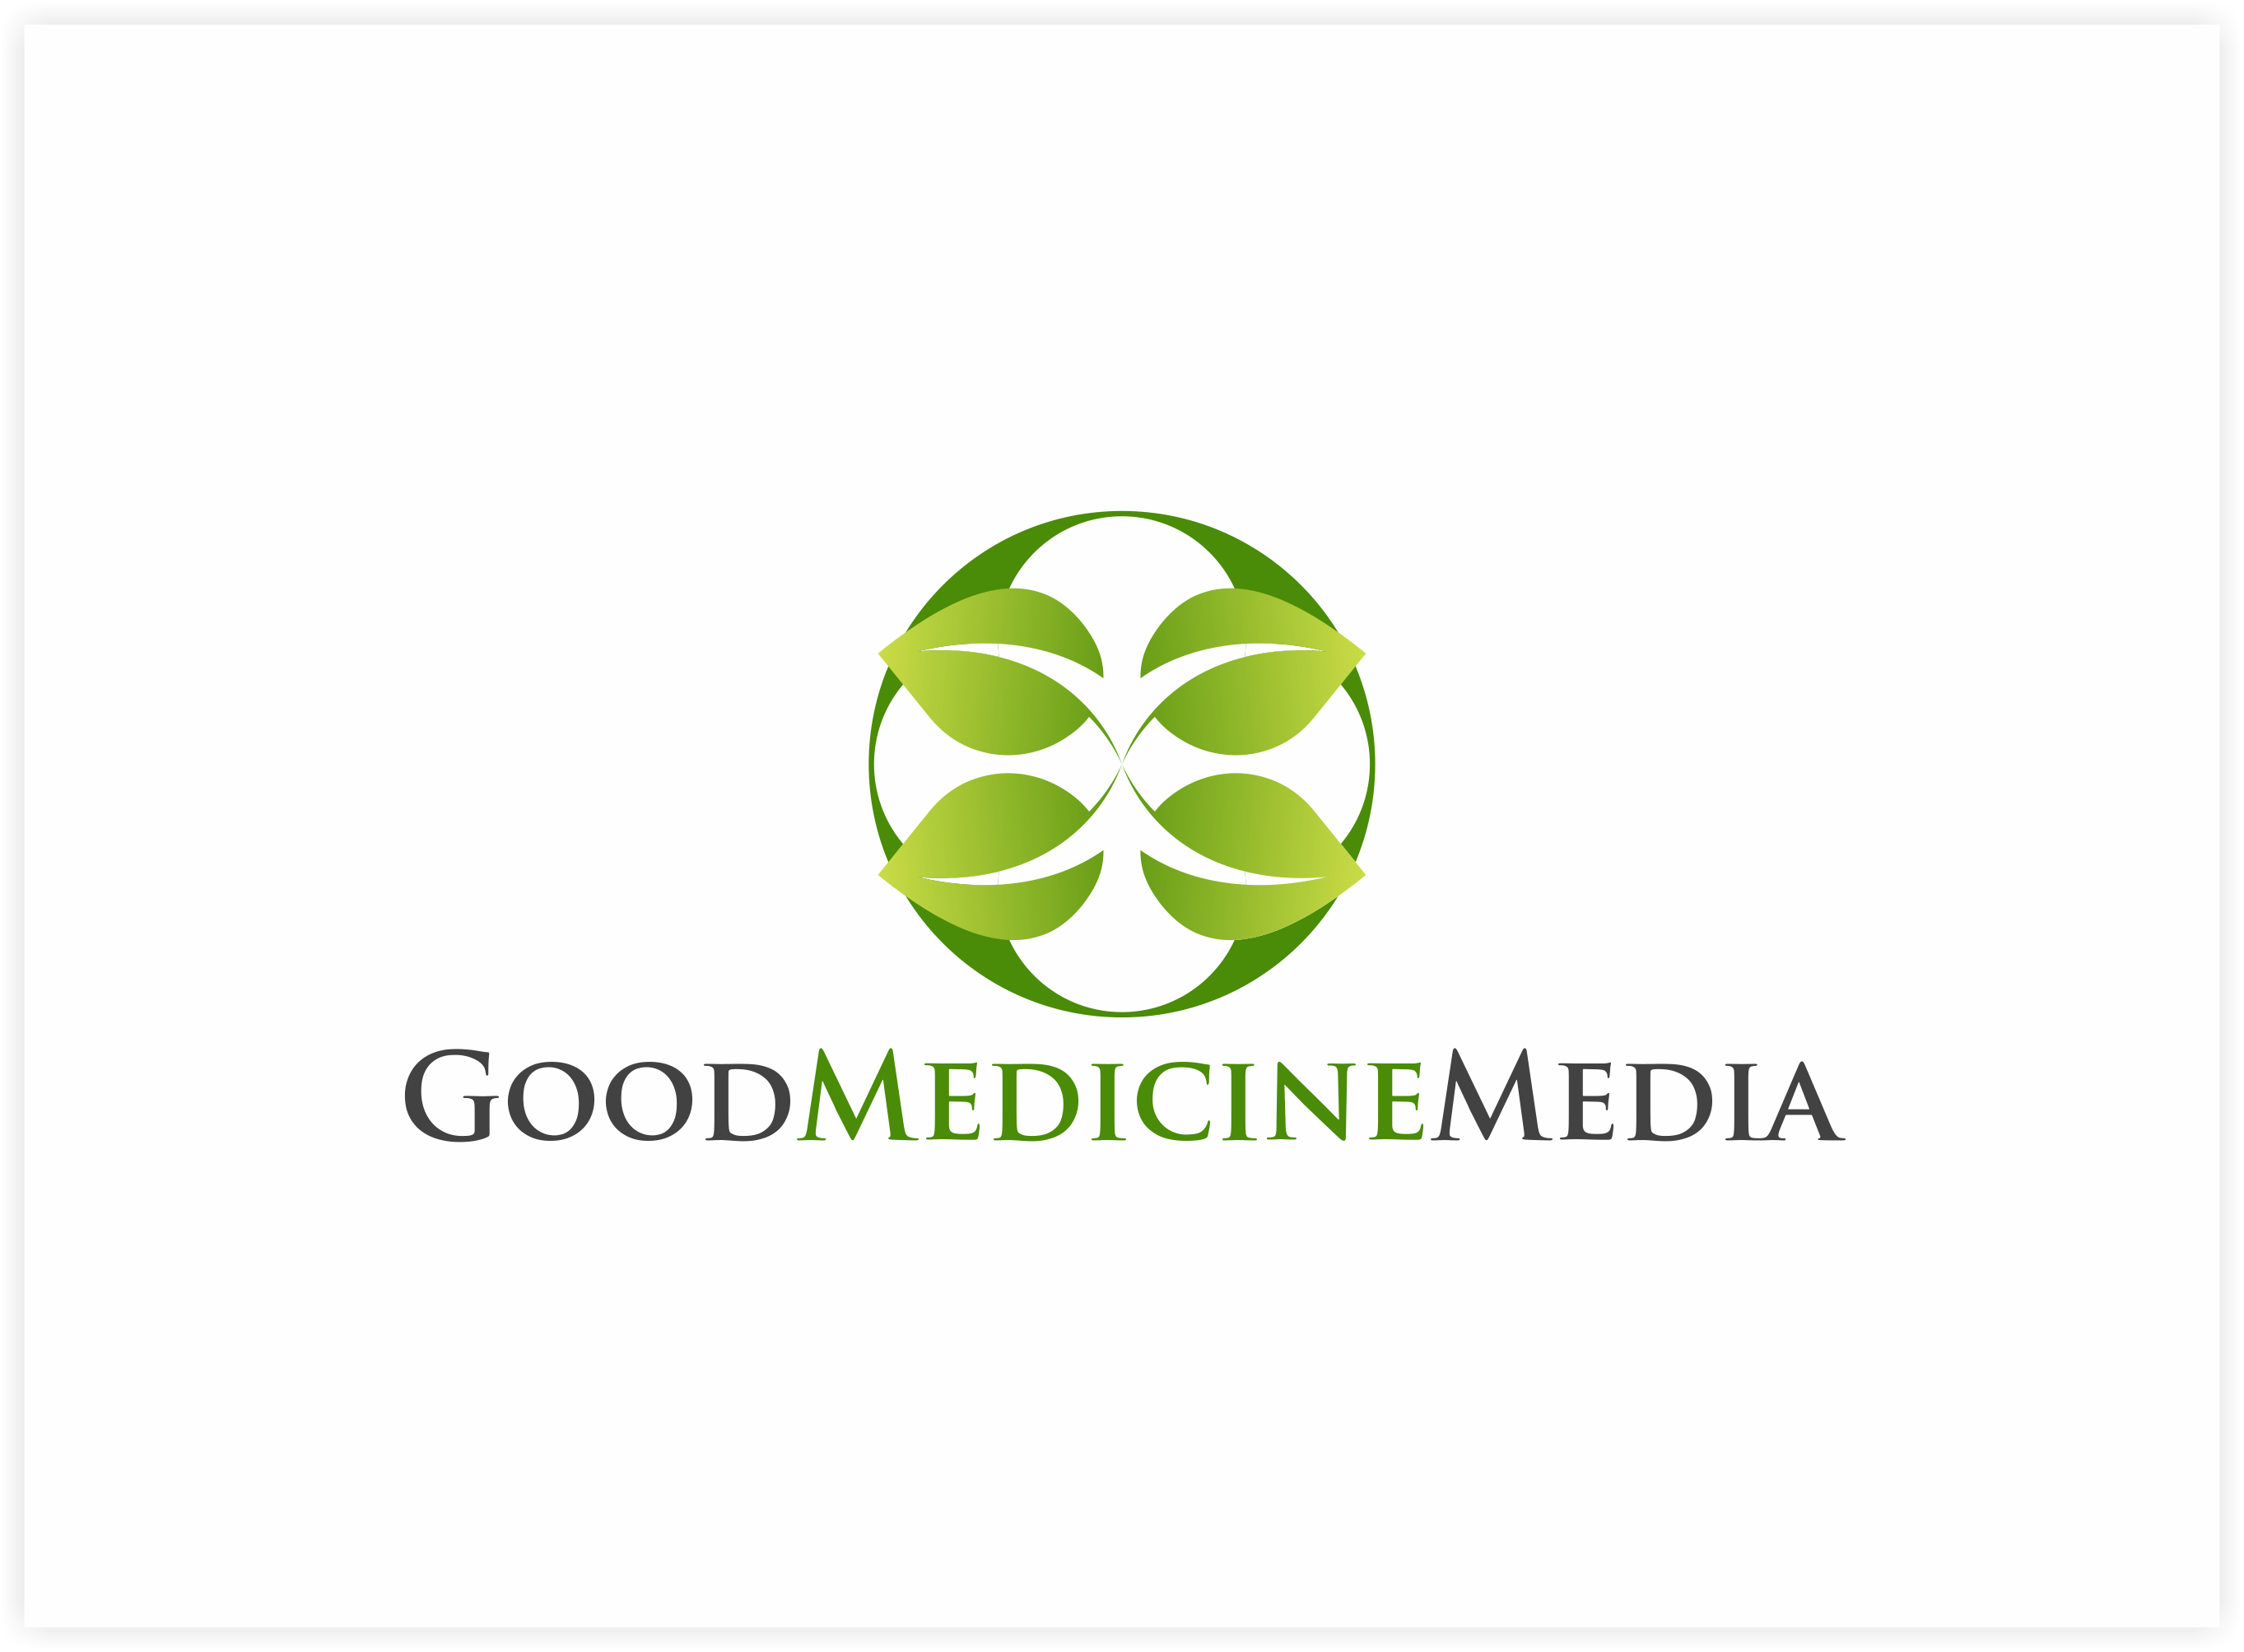 Logo Design by Luis Benayas - Entry No. 144 in the Logo Design Contest Good Medicine Media Logo Design.